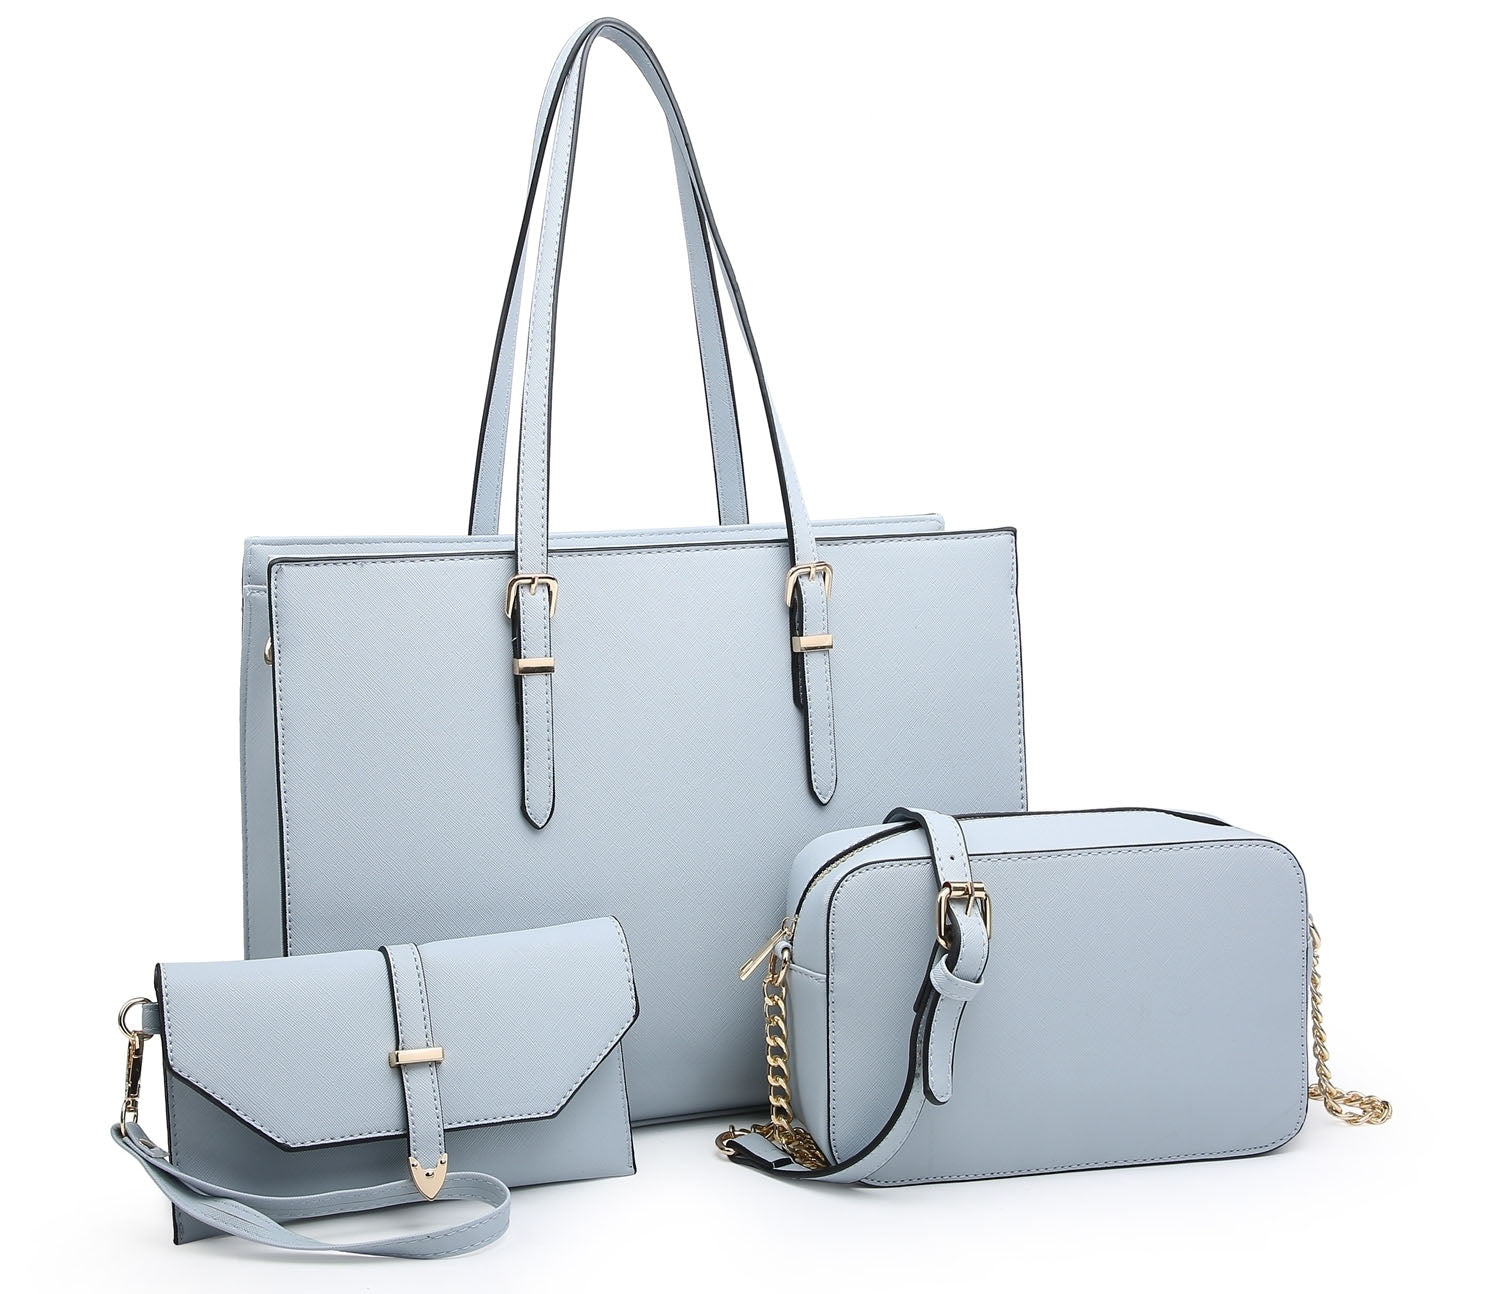 LARGE BLUE TOTE HANDBAG SET WITH PURSE AND CHAIN CROSSBODY BAG